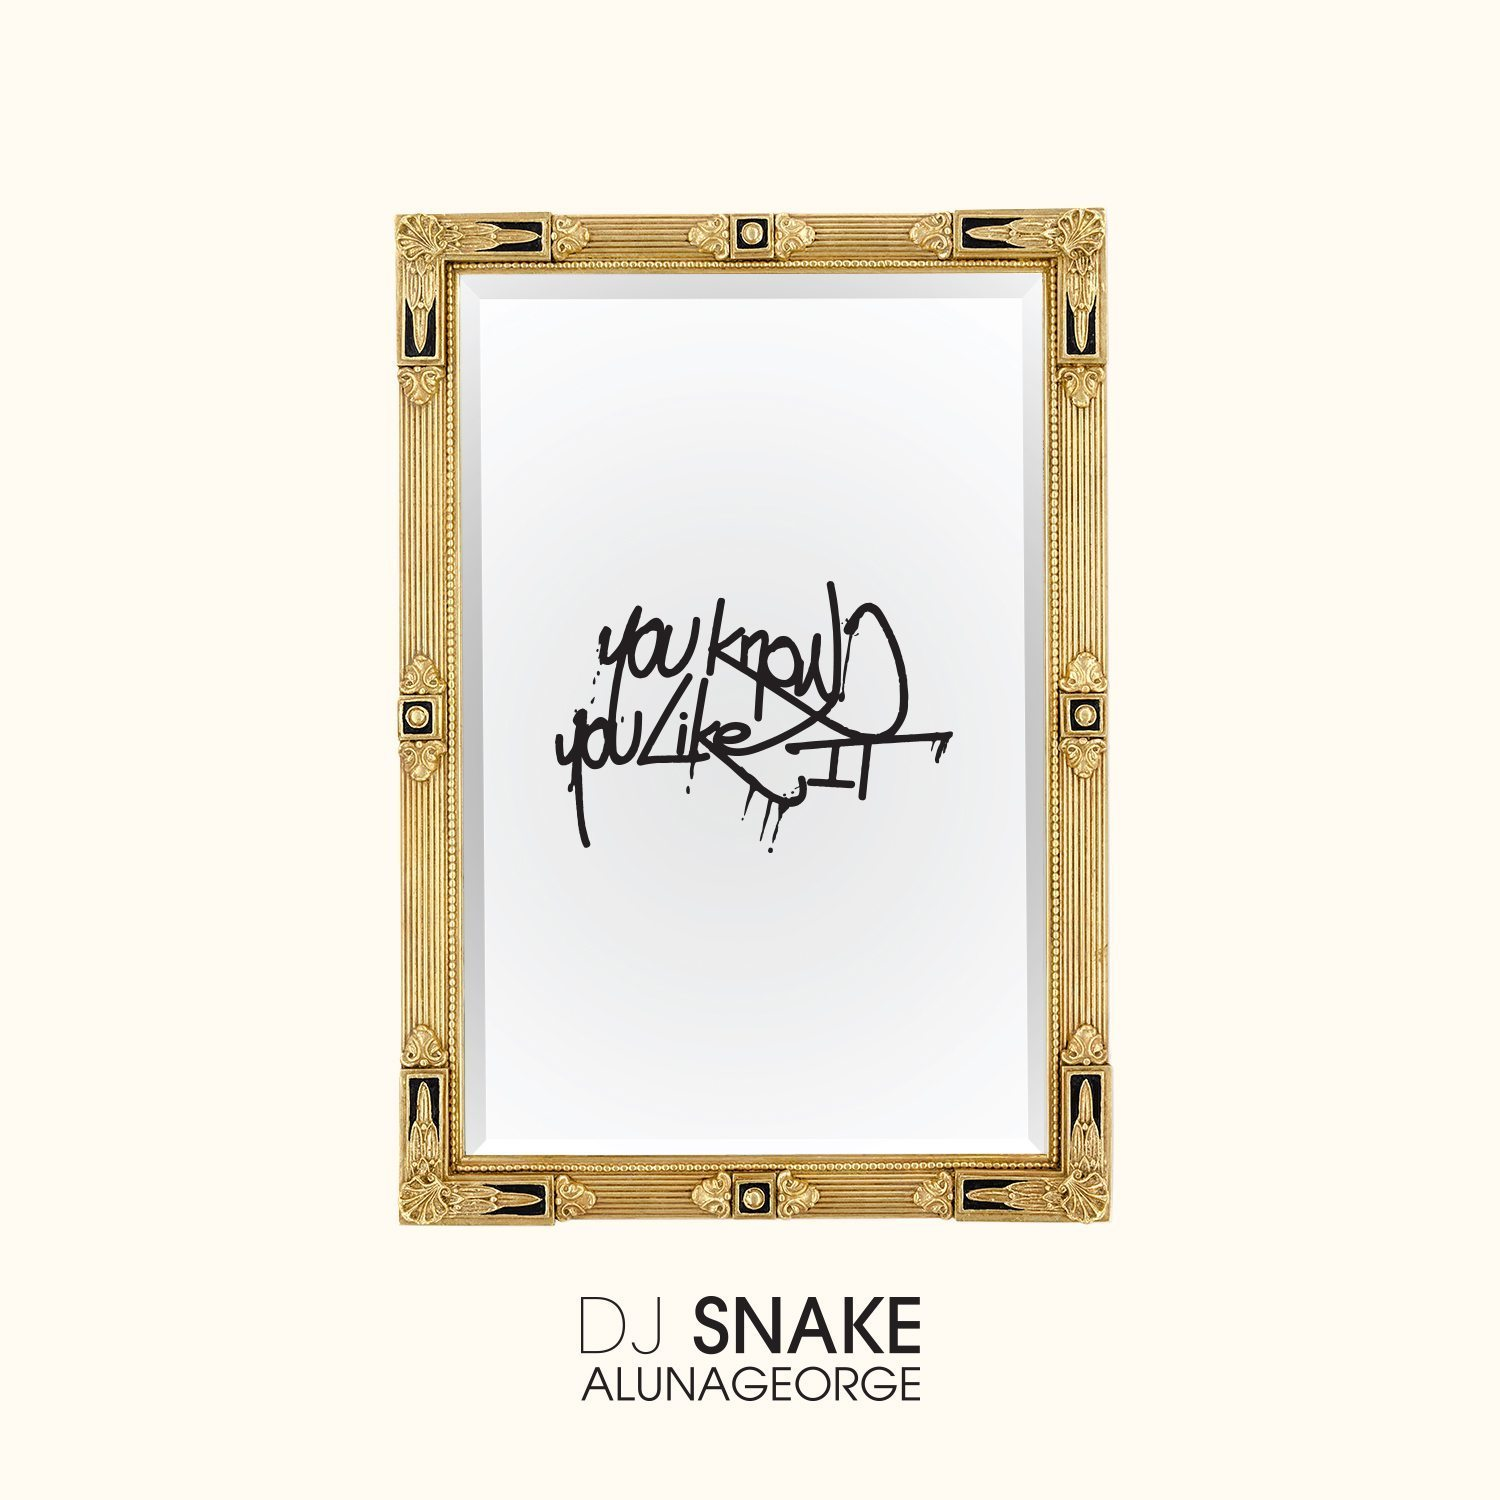 Dj Snake You know you like it (feat AlunaGeorge) (Single) (iTunes Plus)